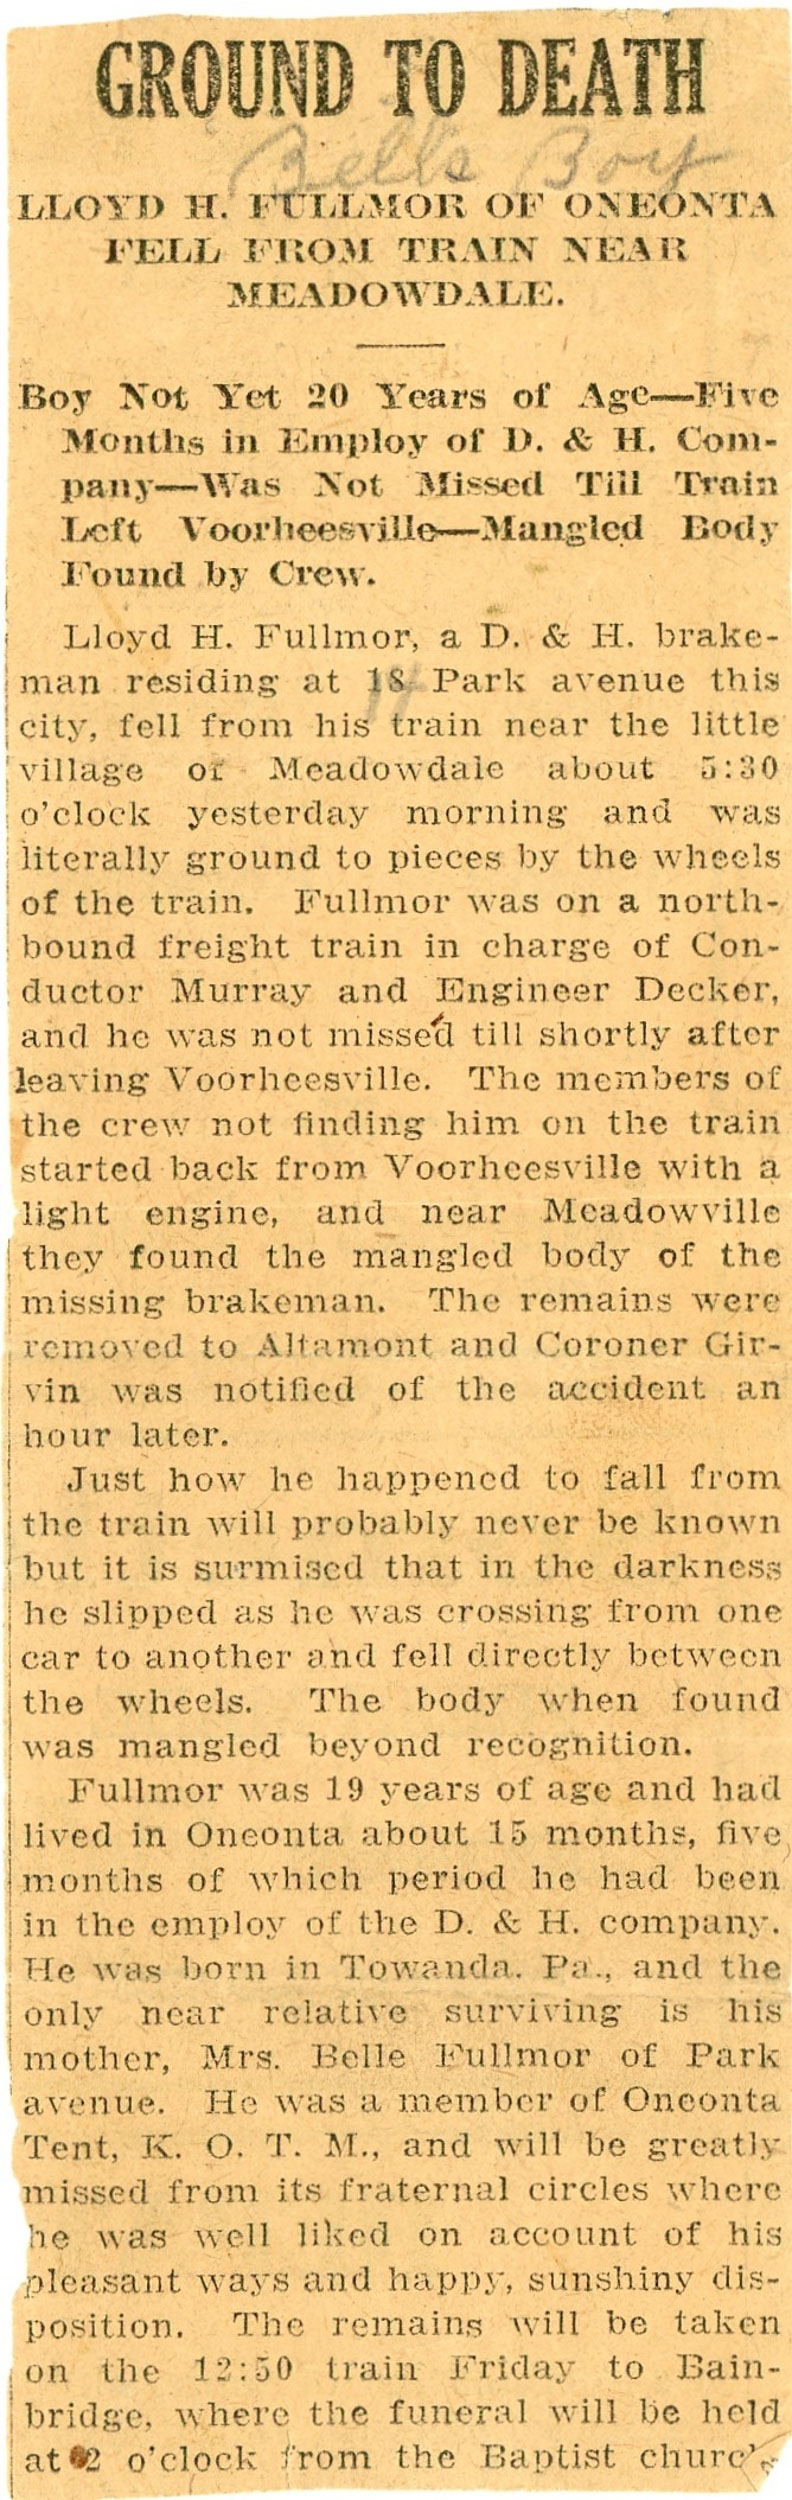 Newspaper article about Lloyd Fullmor being killed while working on a train